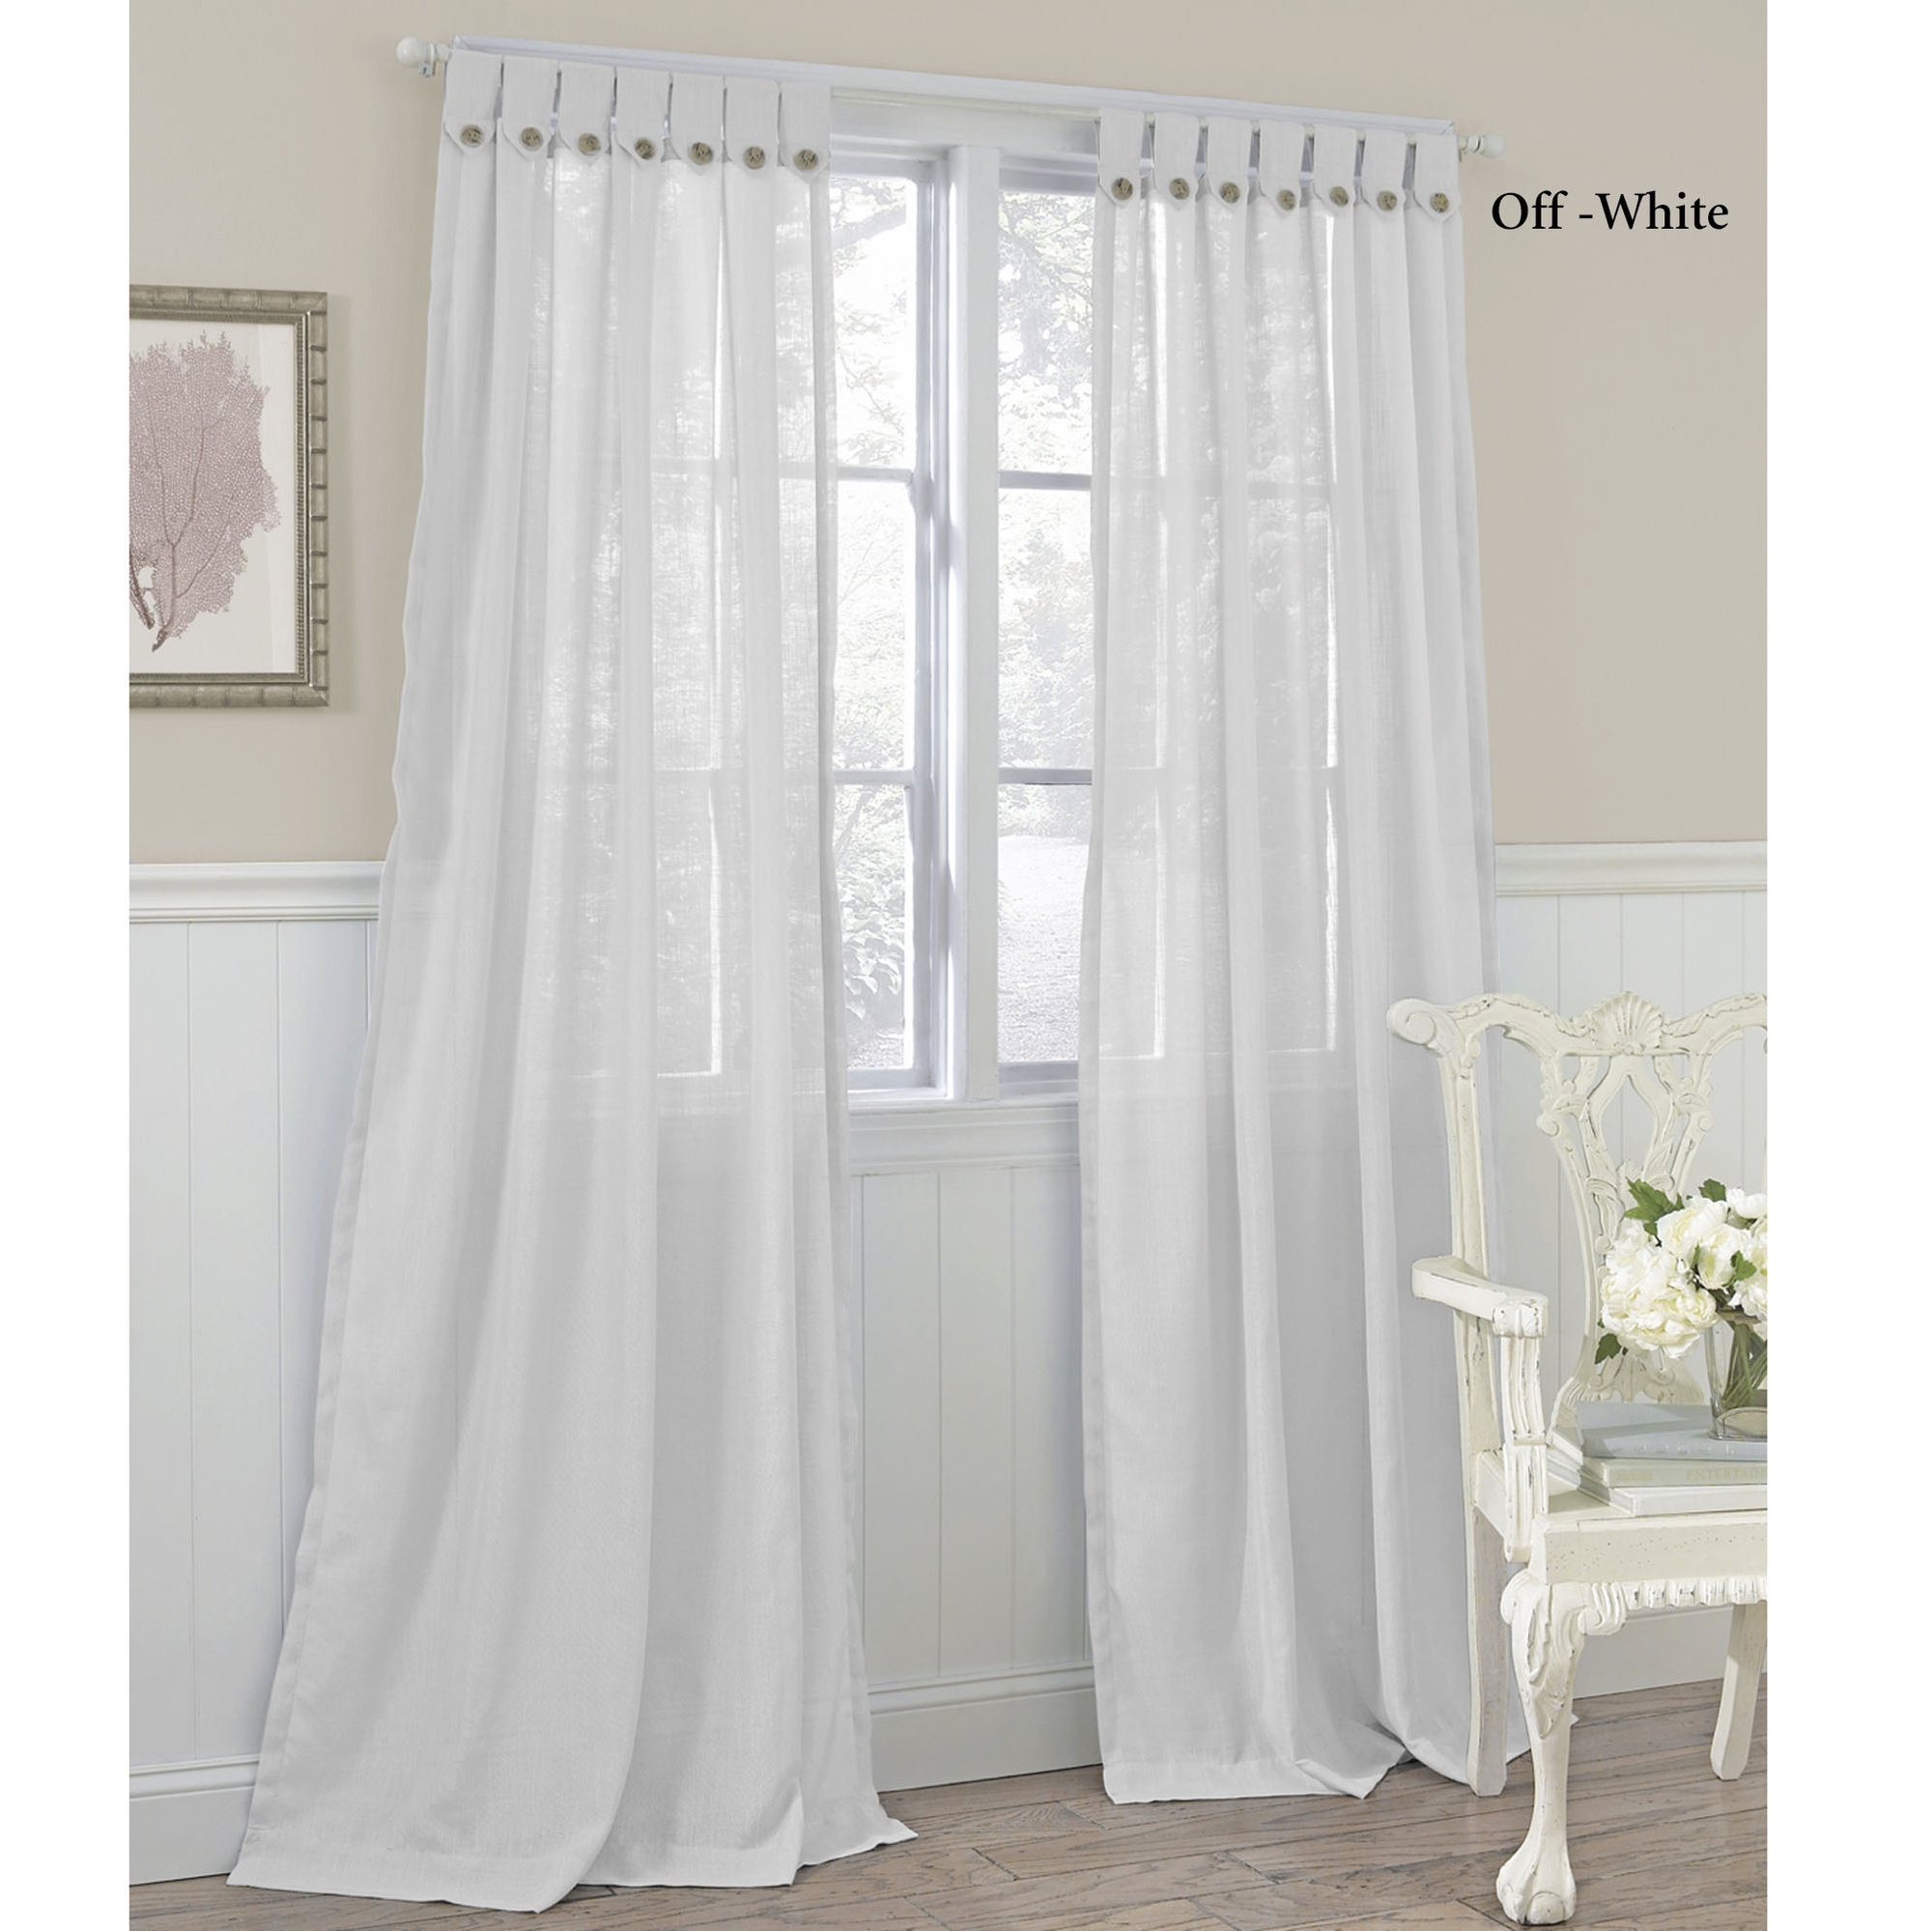 Decor Semi Sheer Curtains For Cute Interior Home Decor Ideas Within Sheer White Curtain Panels (Image 7 of 25)